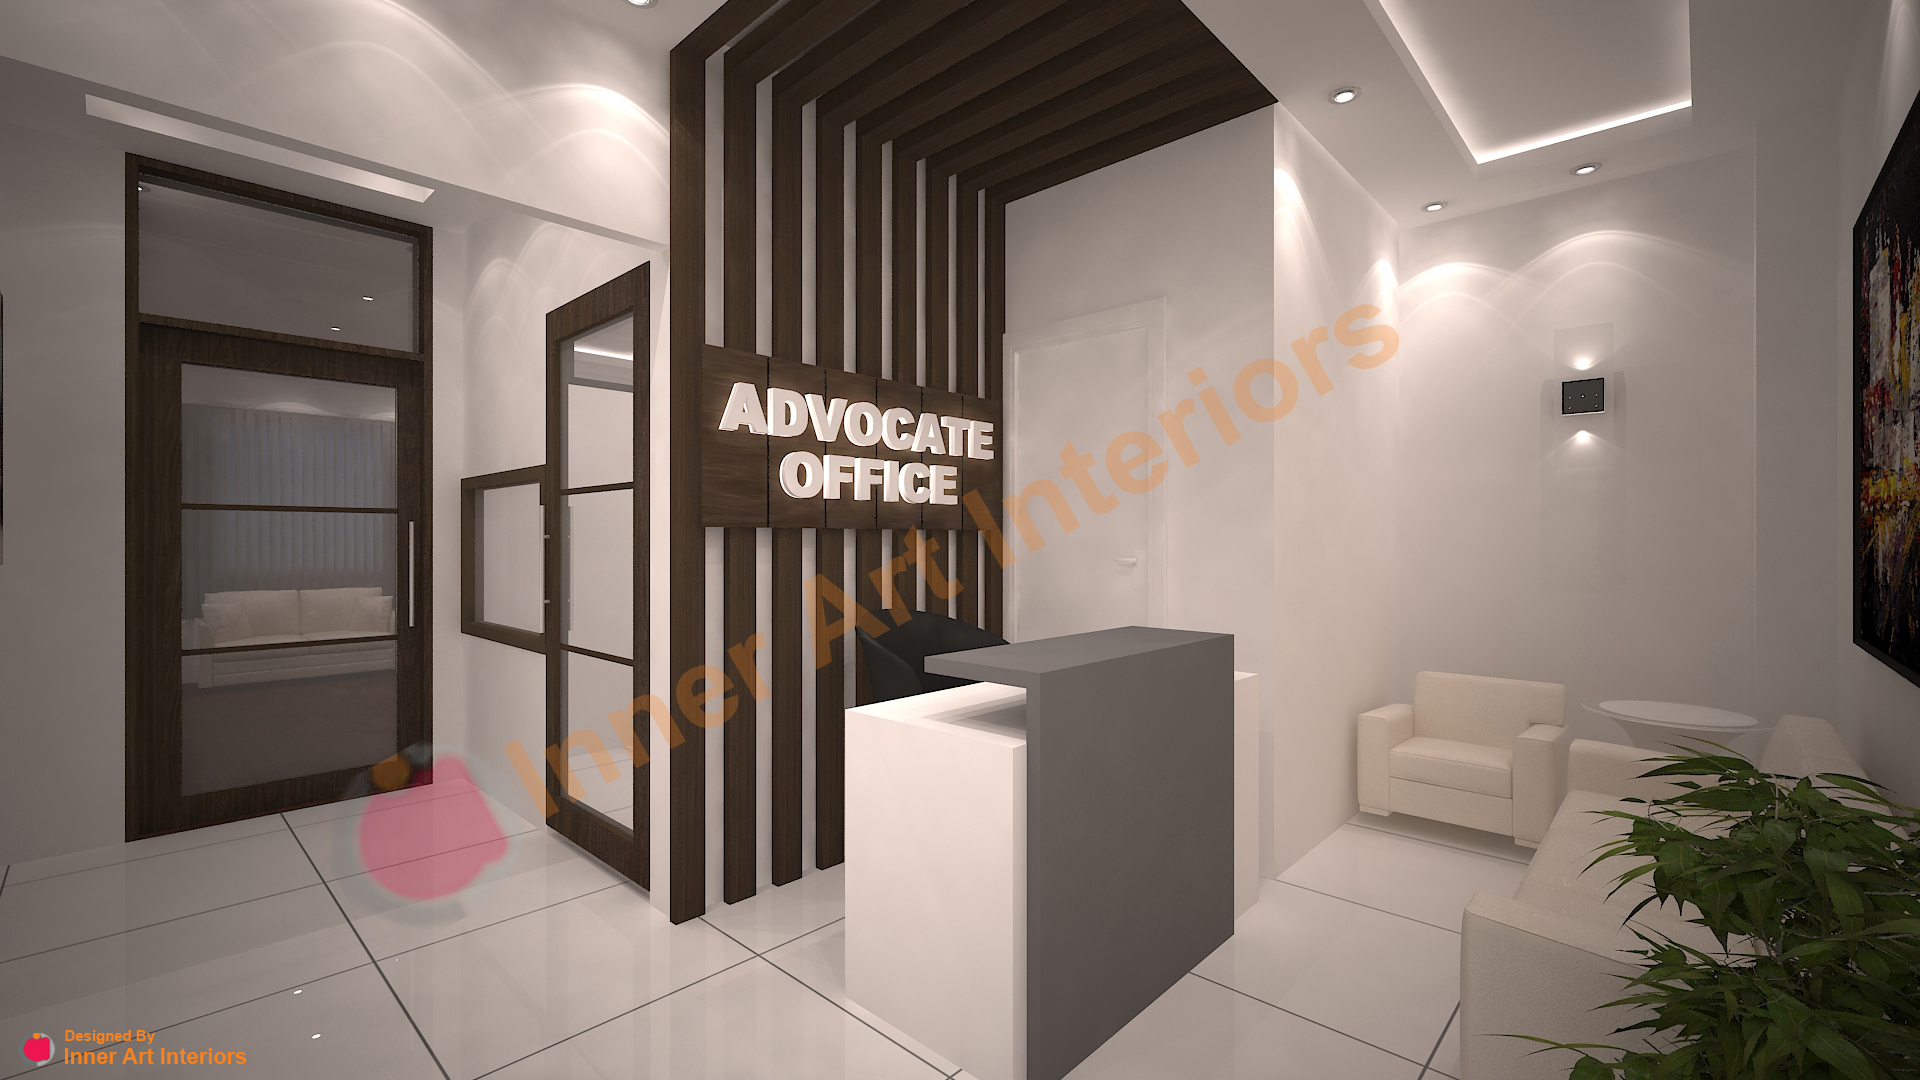 Advocate Office